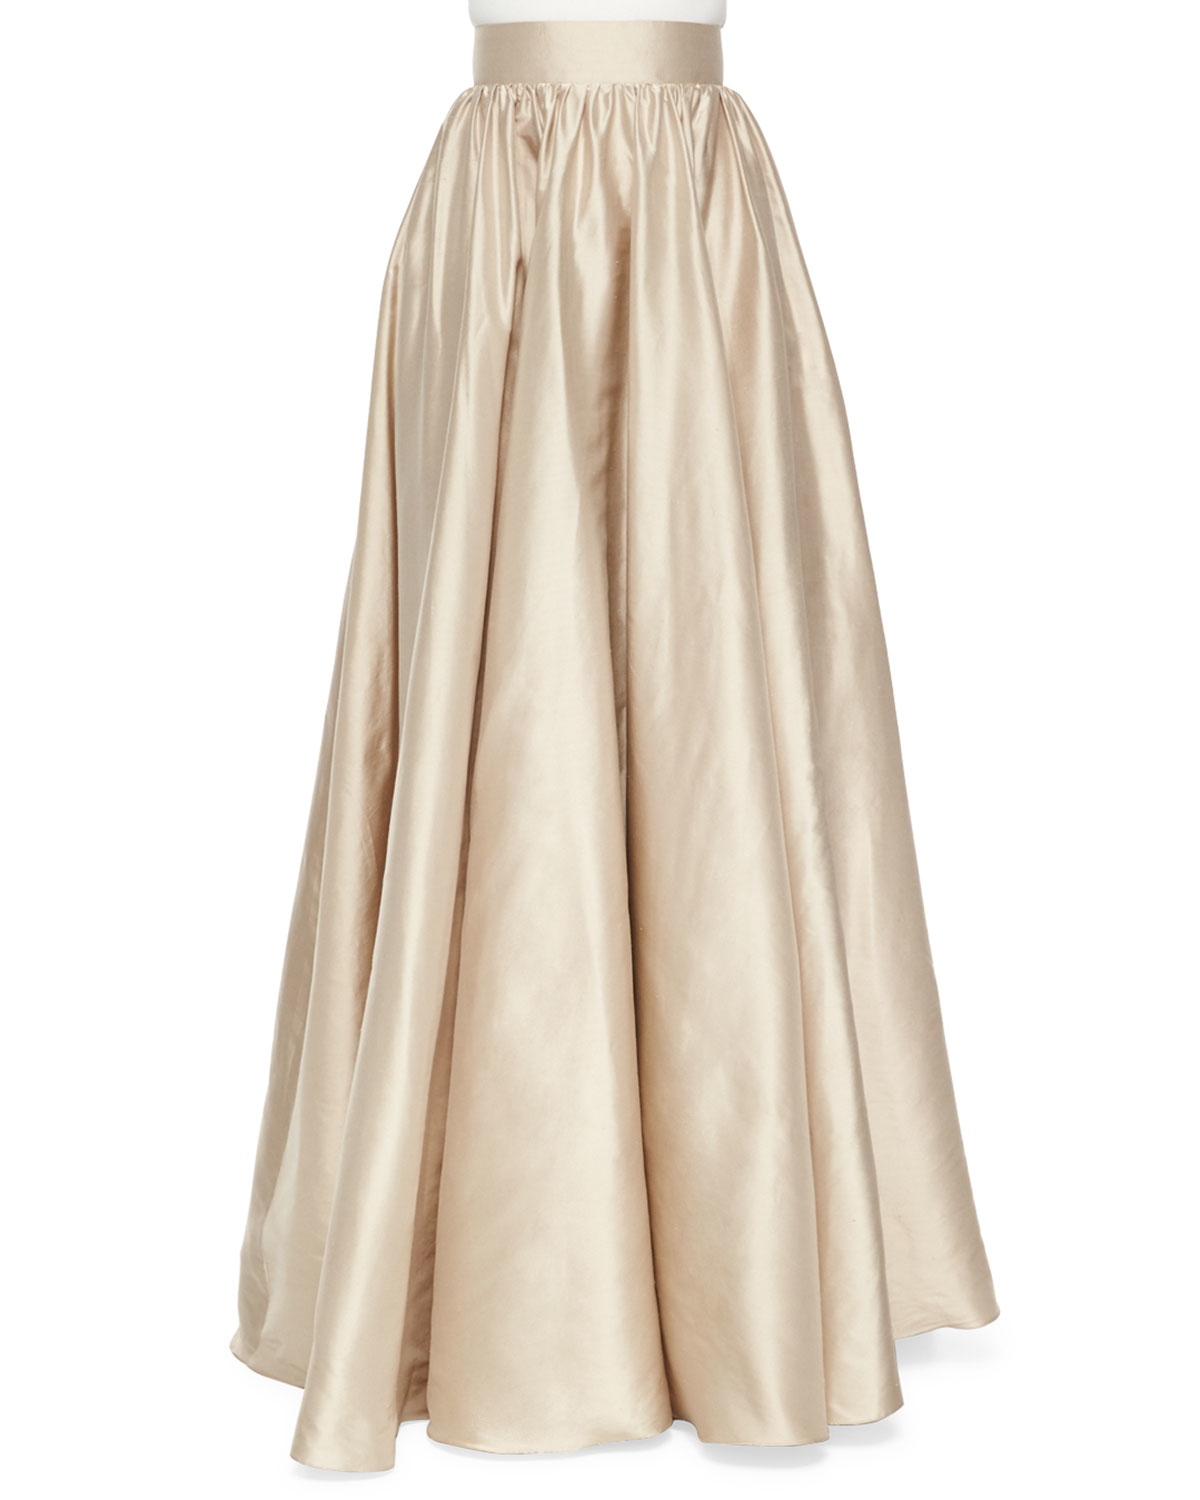 Jenny packham Full Satin Ball Skirt in Natural | Lyst